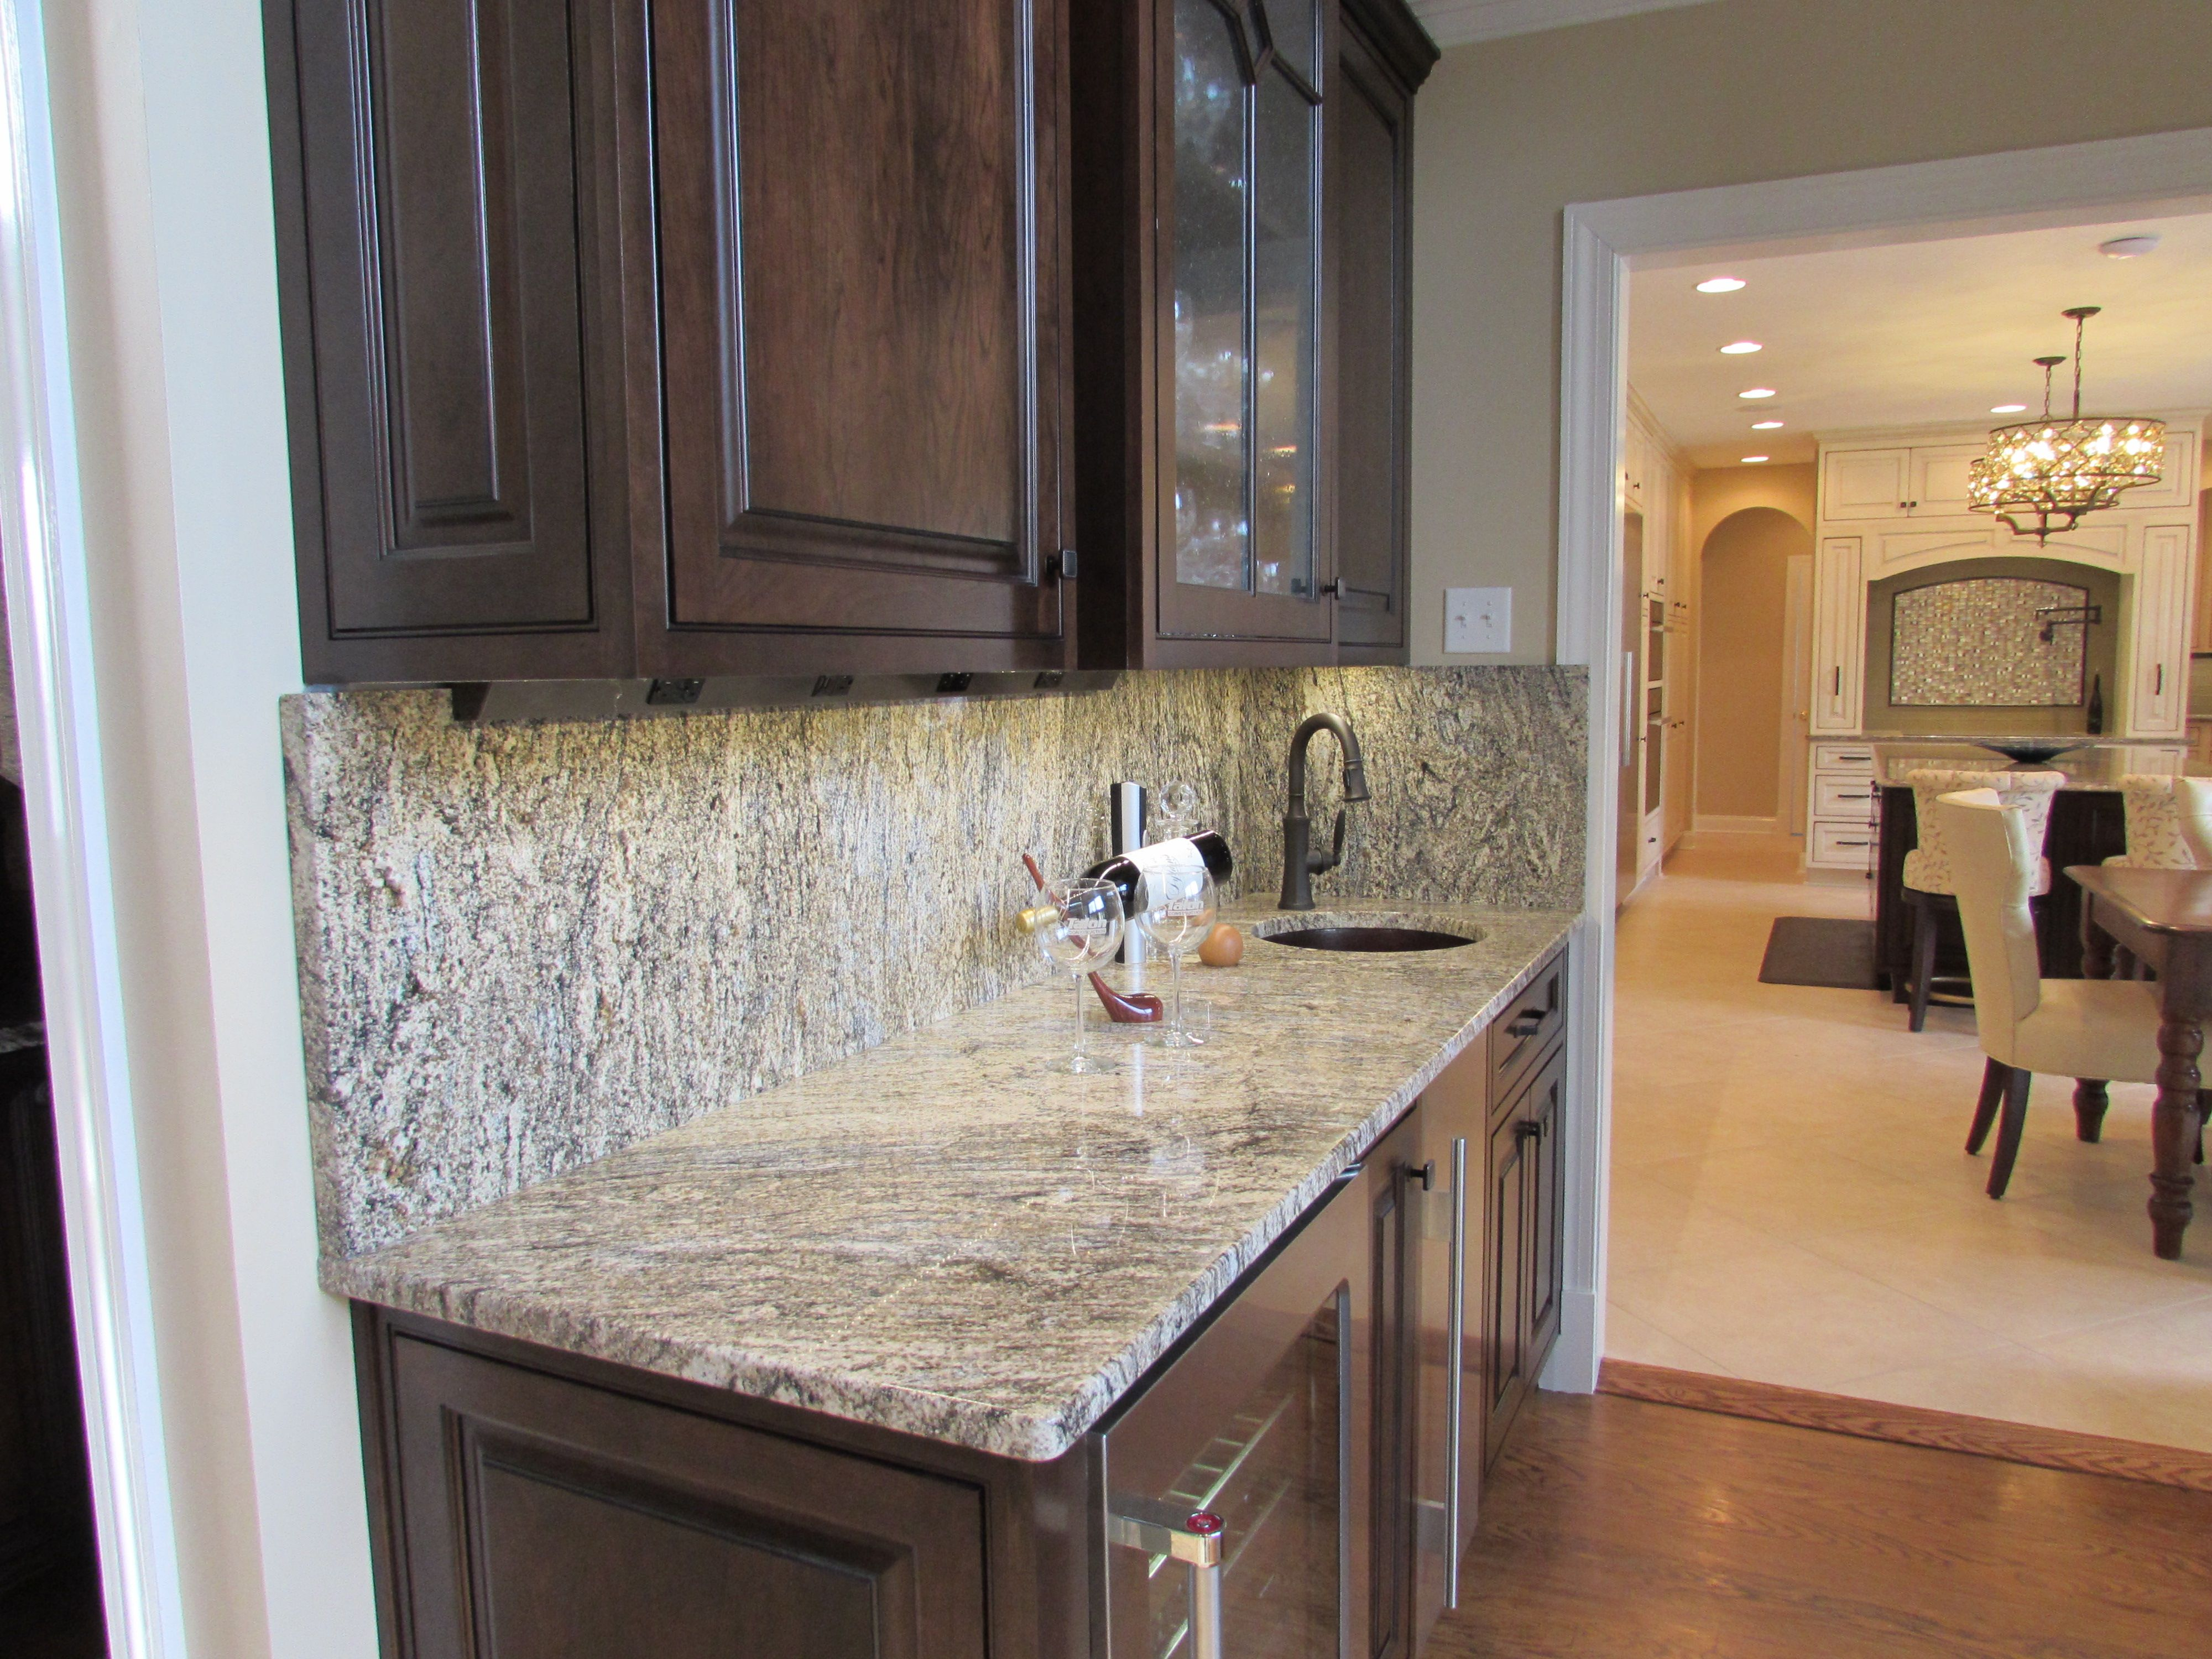 N Potomac MD Kitchen Remodel With Wet Bar Ideas For The House - Kitchen remodeling frederick md